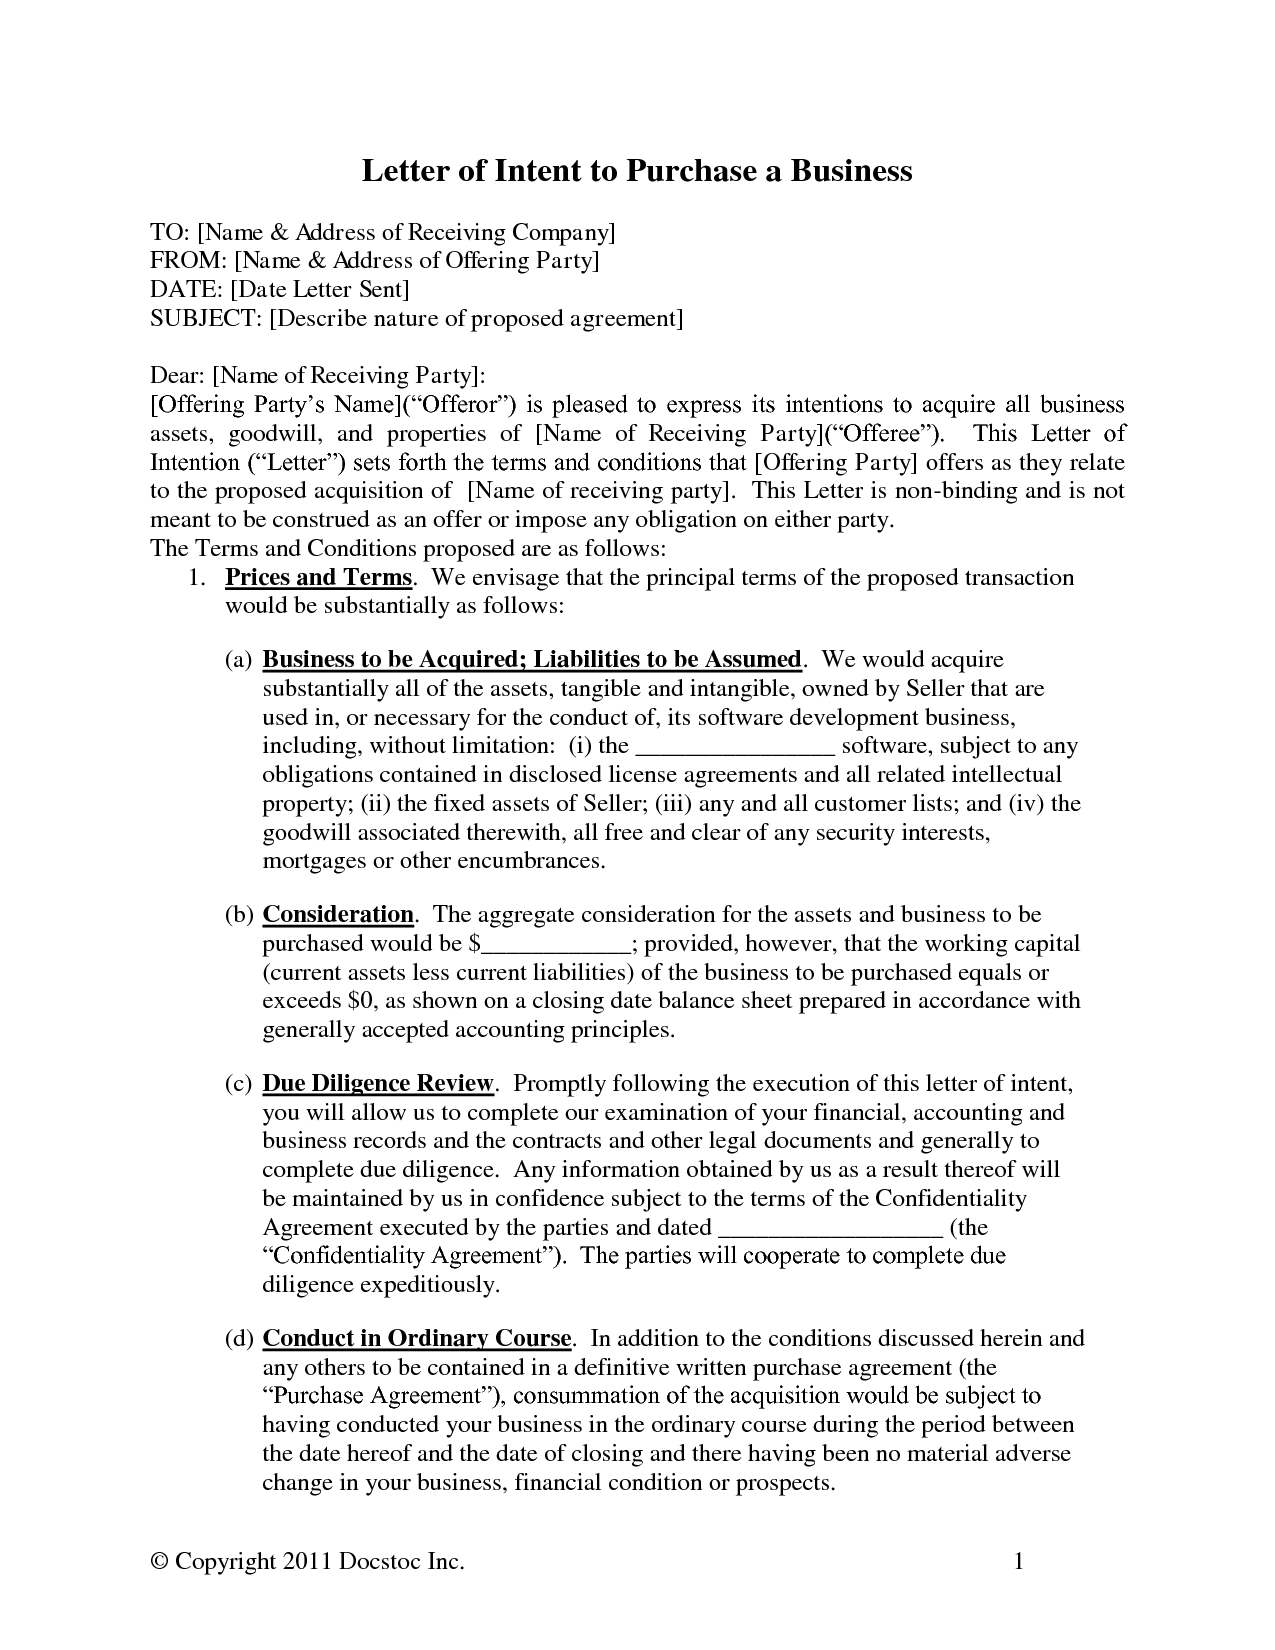 Letter Of Intent to Purchase Business Template Free - Acquisition Business Letters